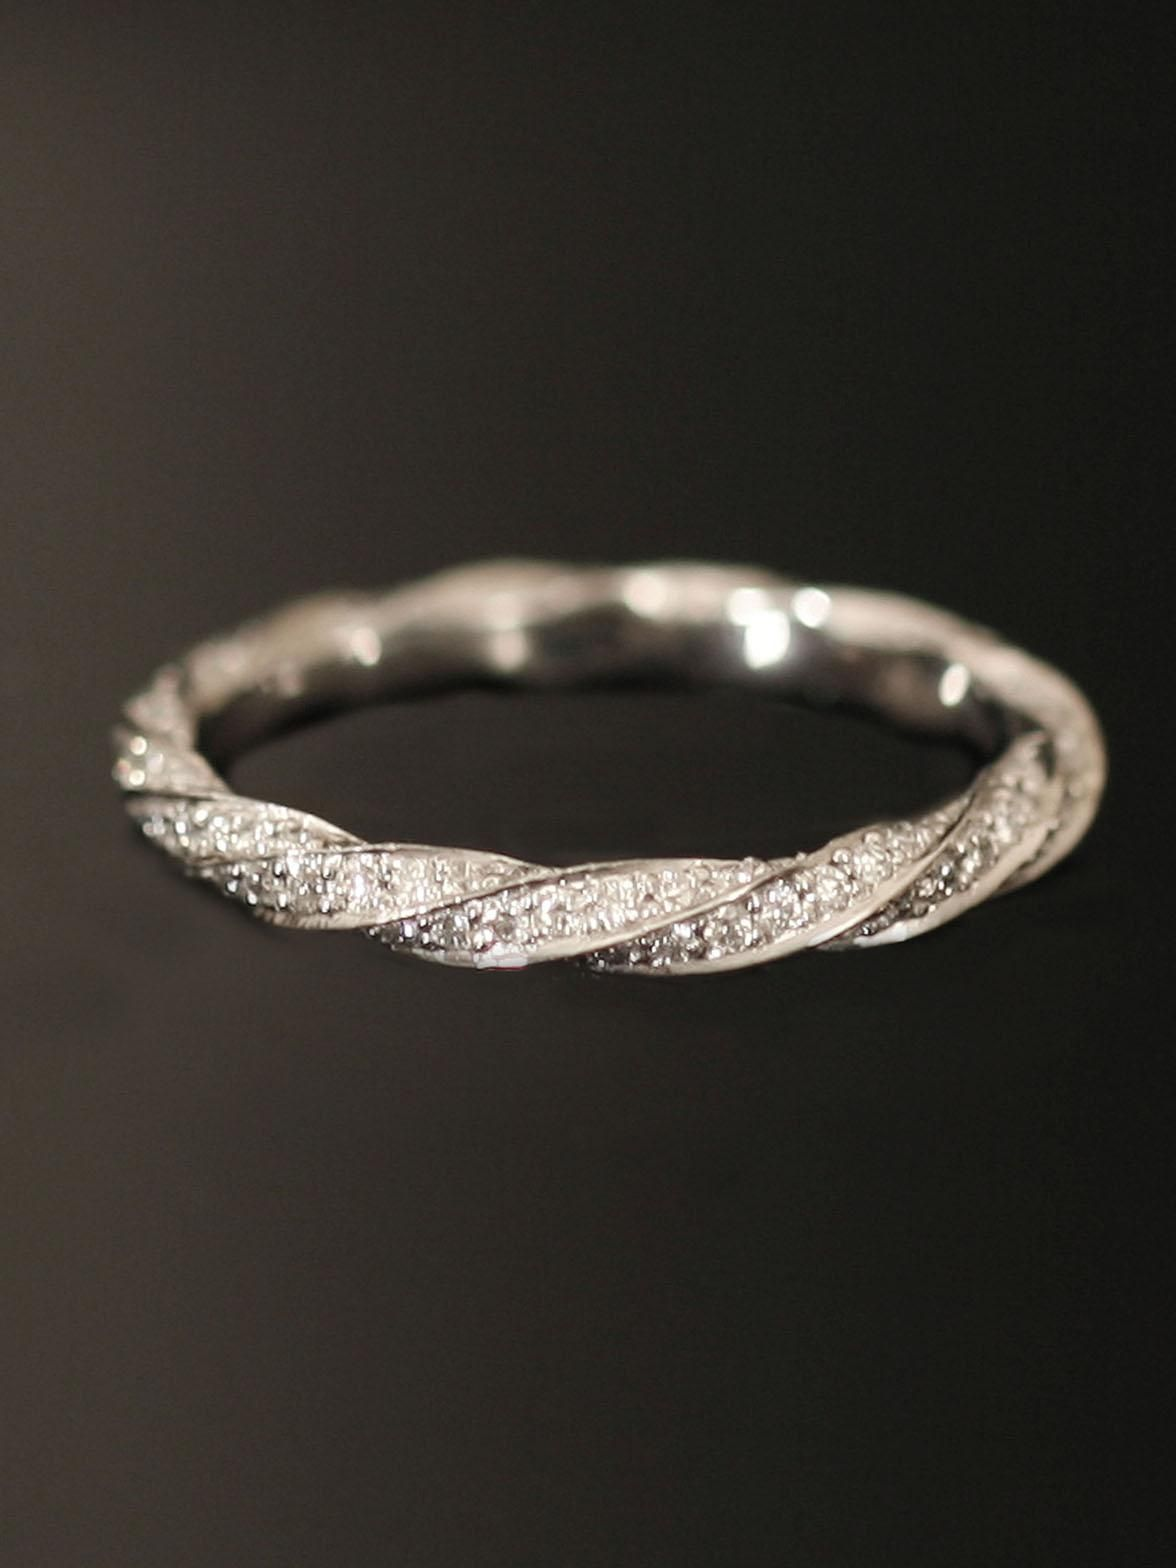 Michael B At London Jewelers Wedding Bands Eternity Bands Wedding Rings Engagement